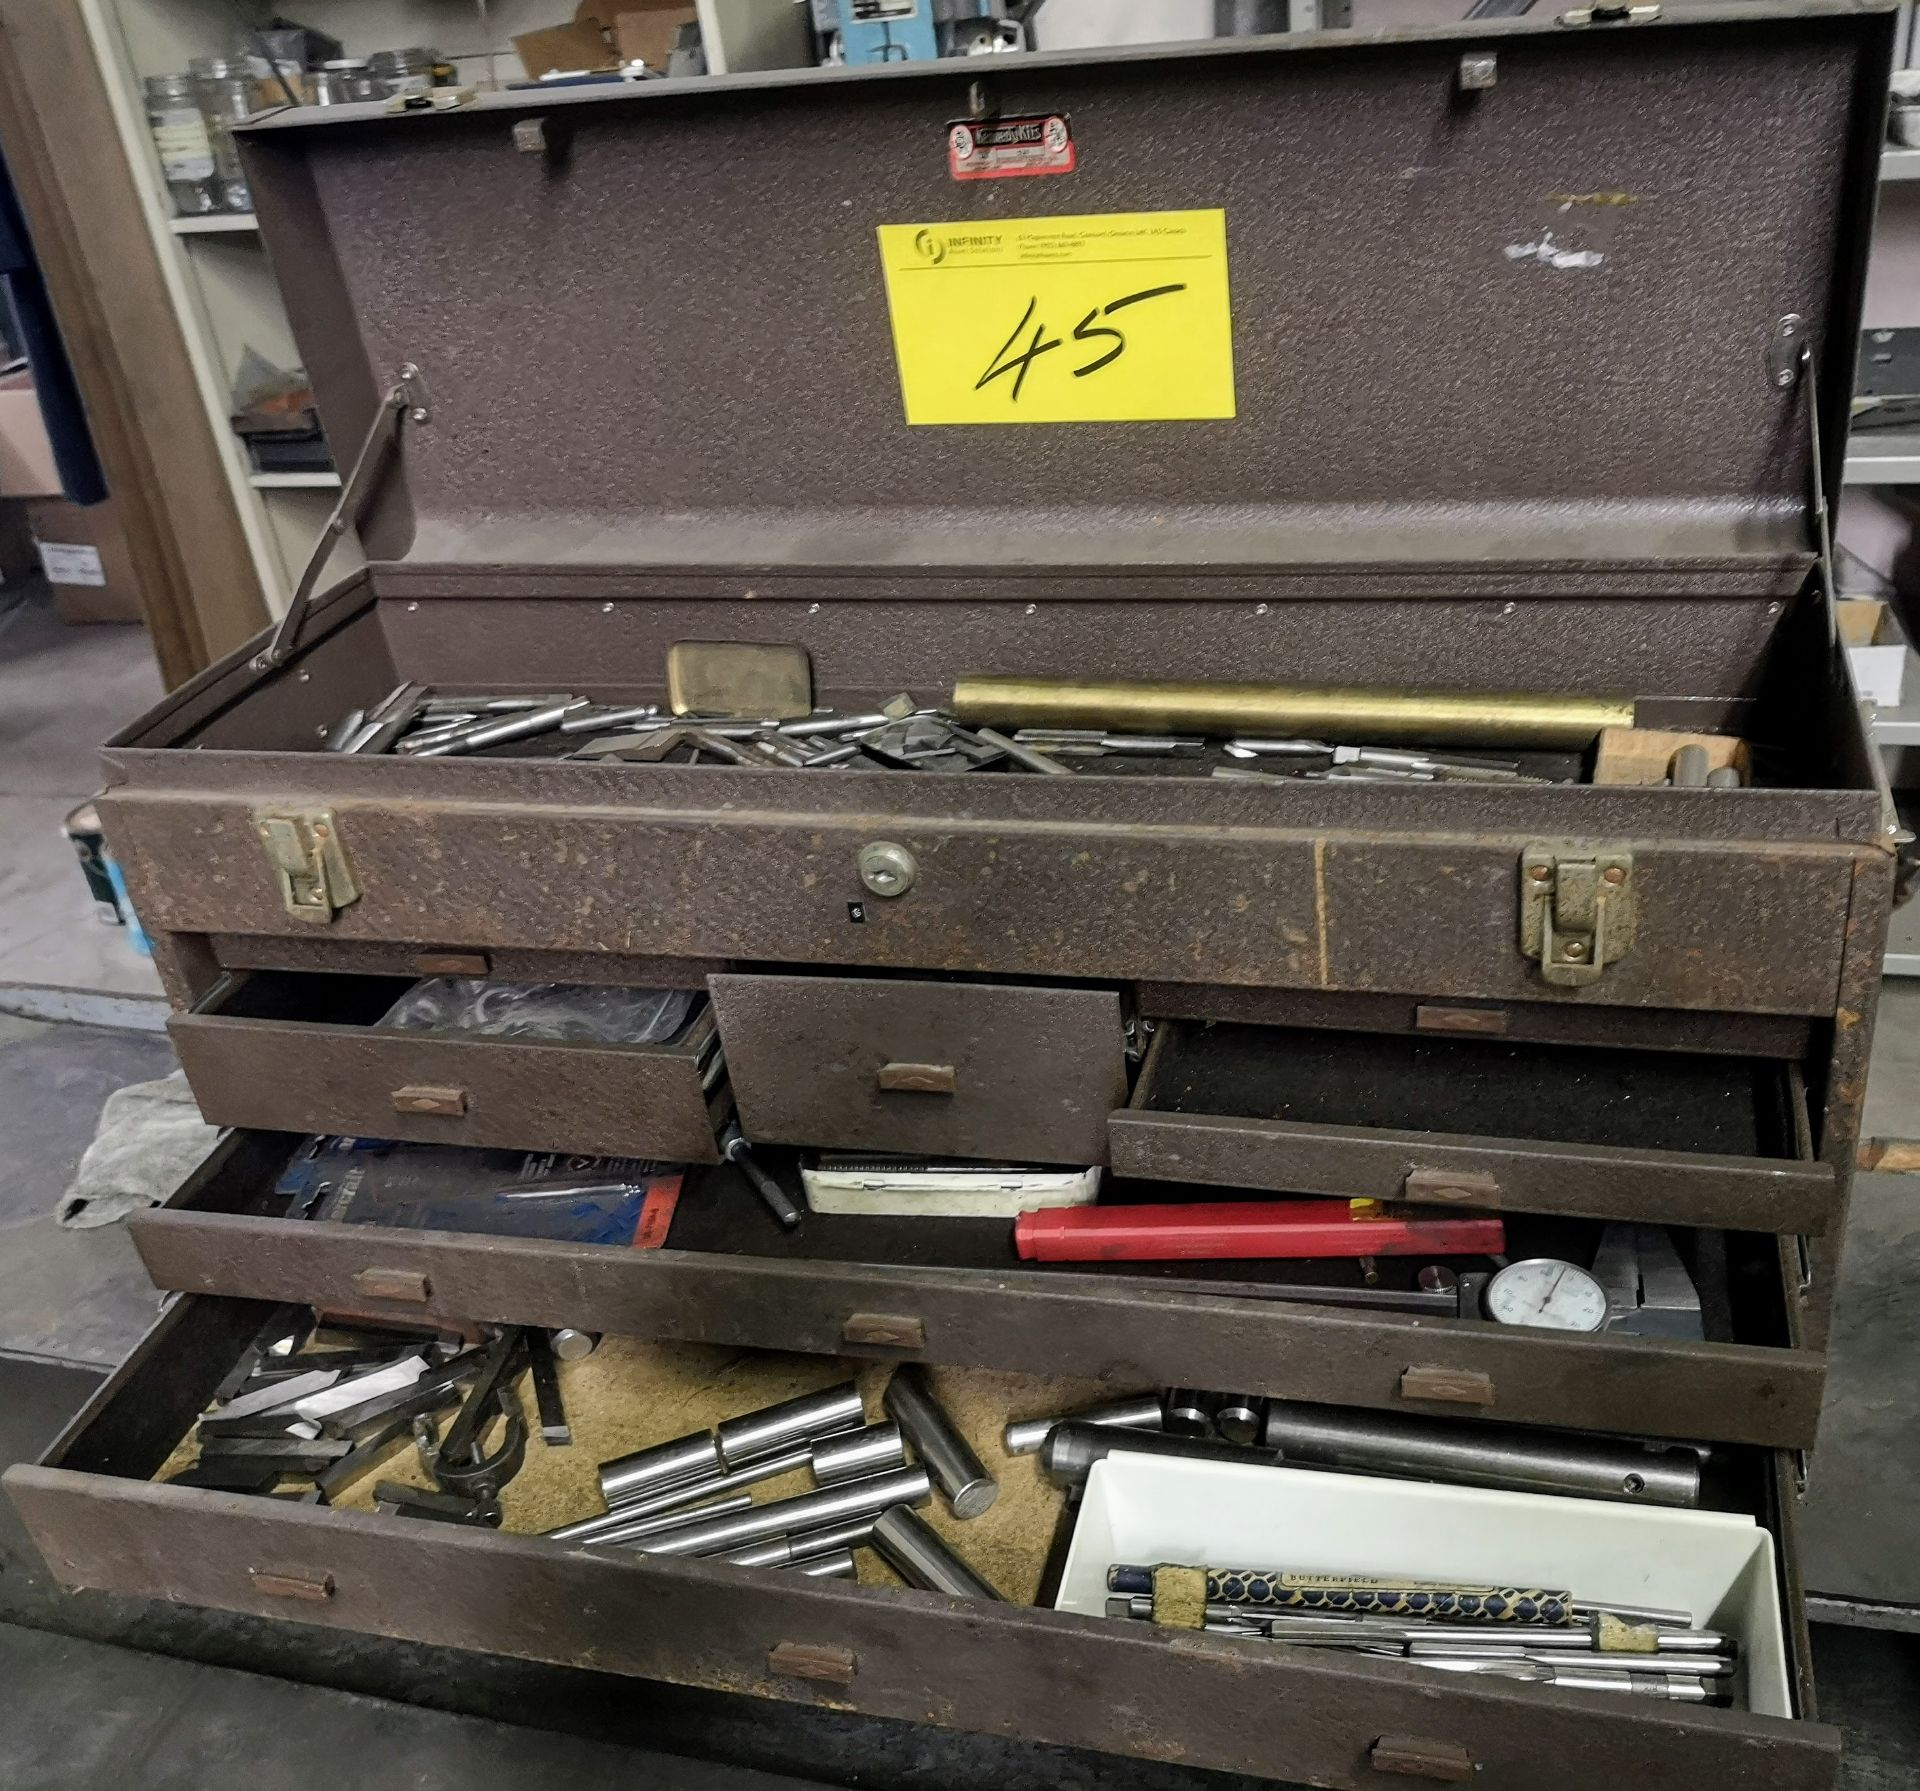 Lot 45 - KENNEDY KIT TOOLBOX W/ TAPS, REAMERS, ETC.